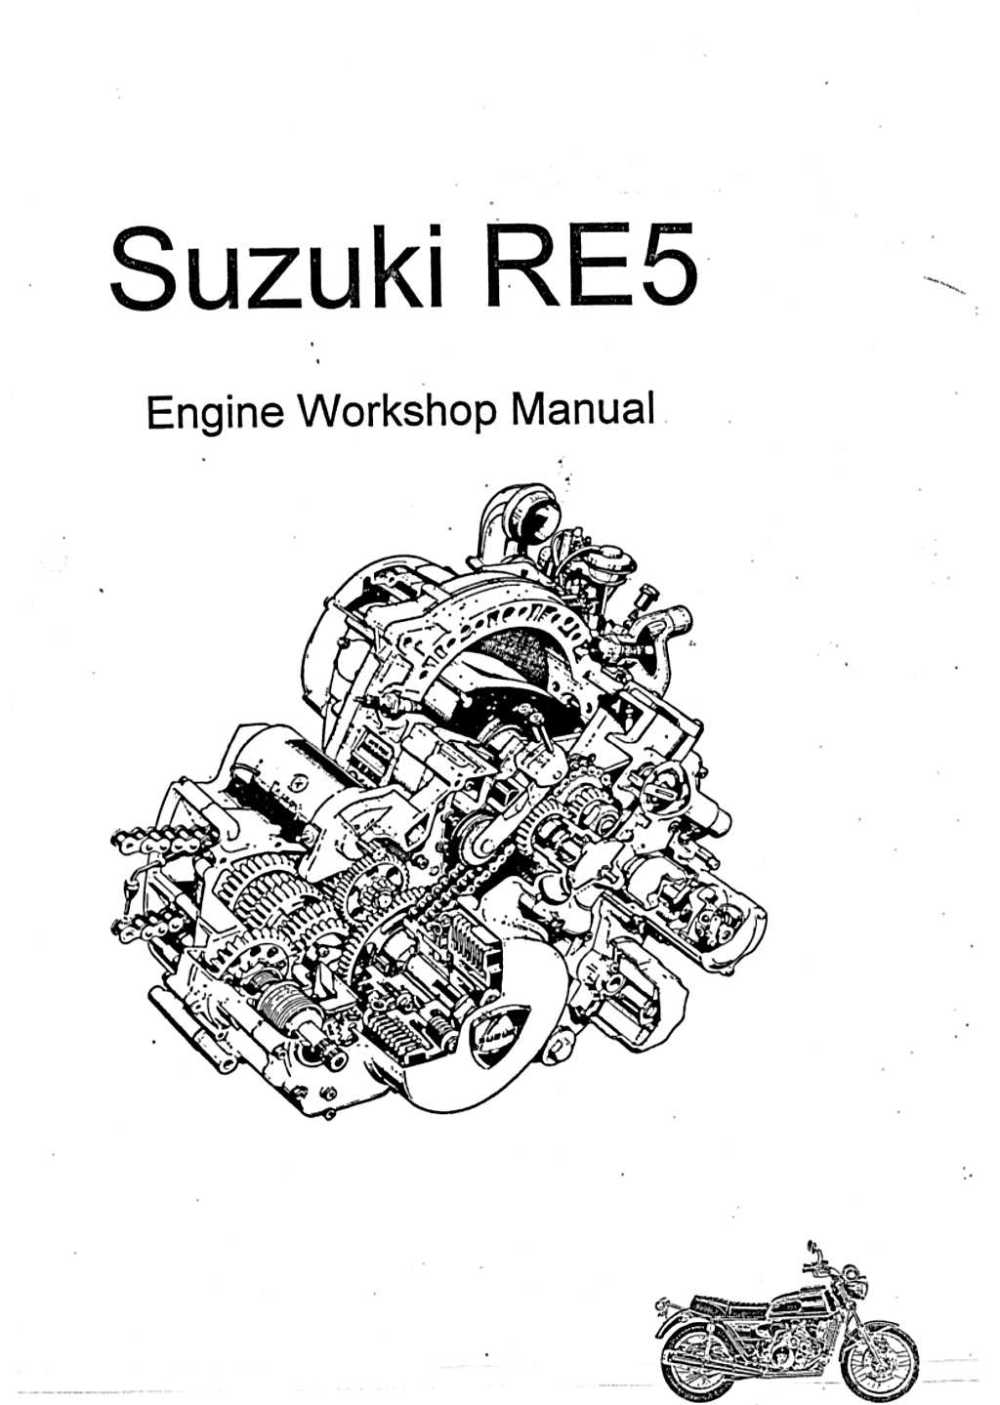 medium resolution of official toyota lexus timing belt 3 sun uses timing belt rather than chain 3l engine repair manual supplement most others diesel was manufactured by